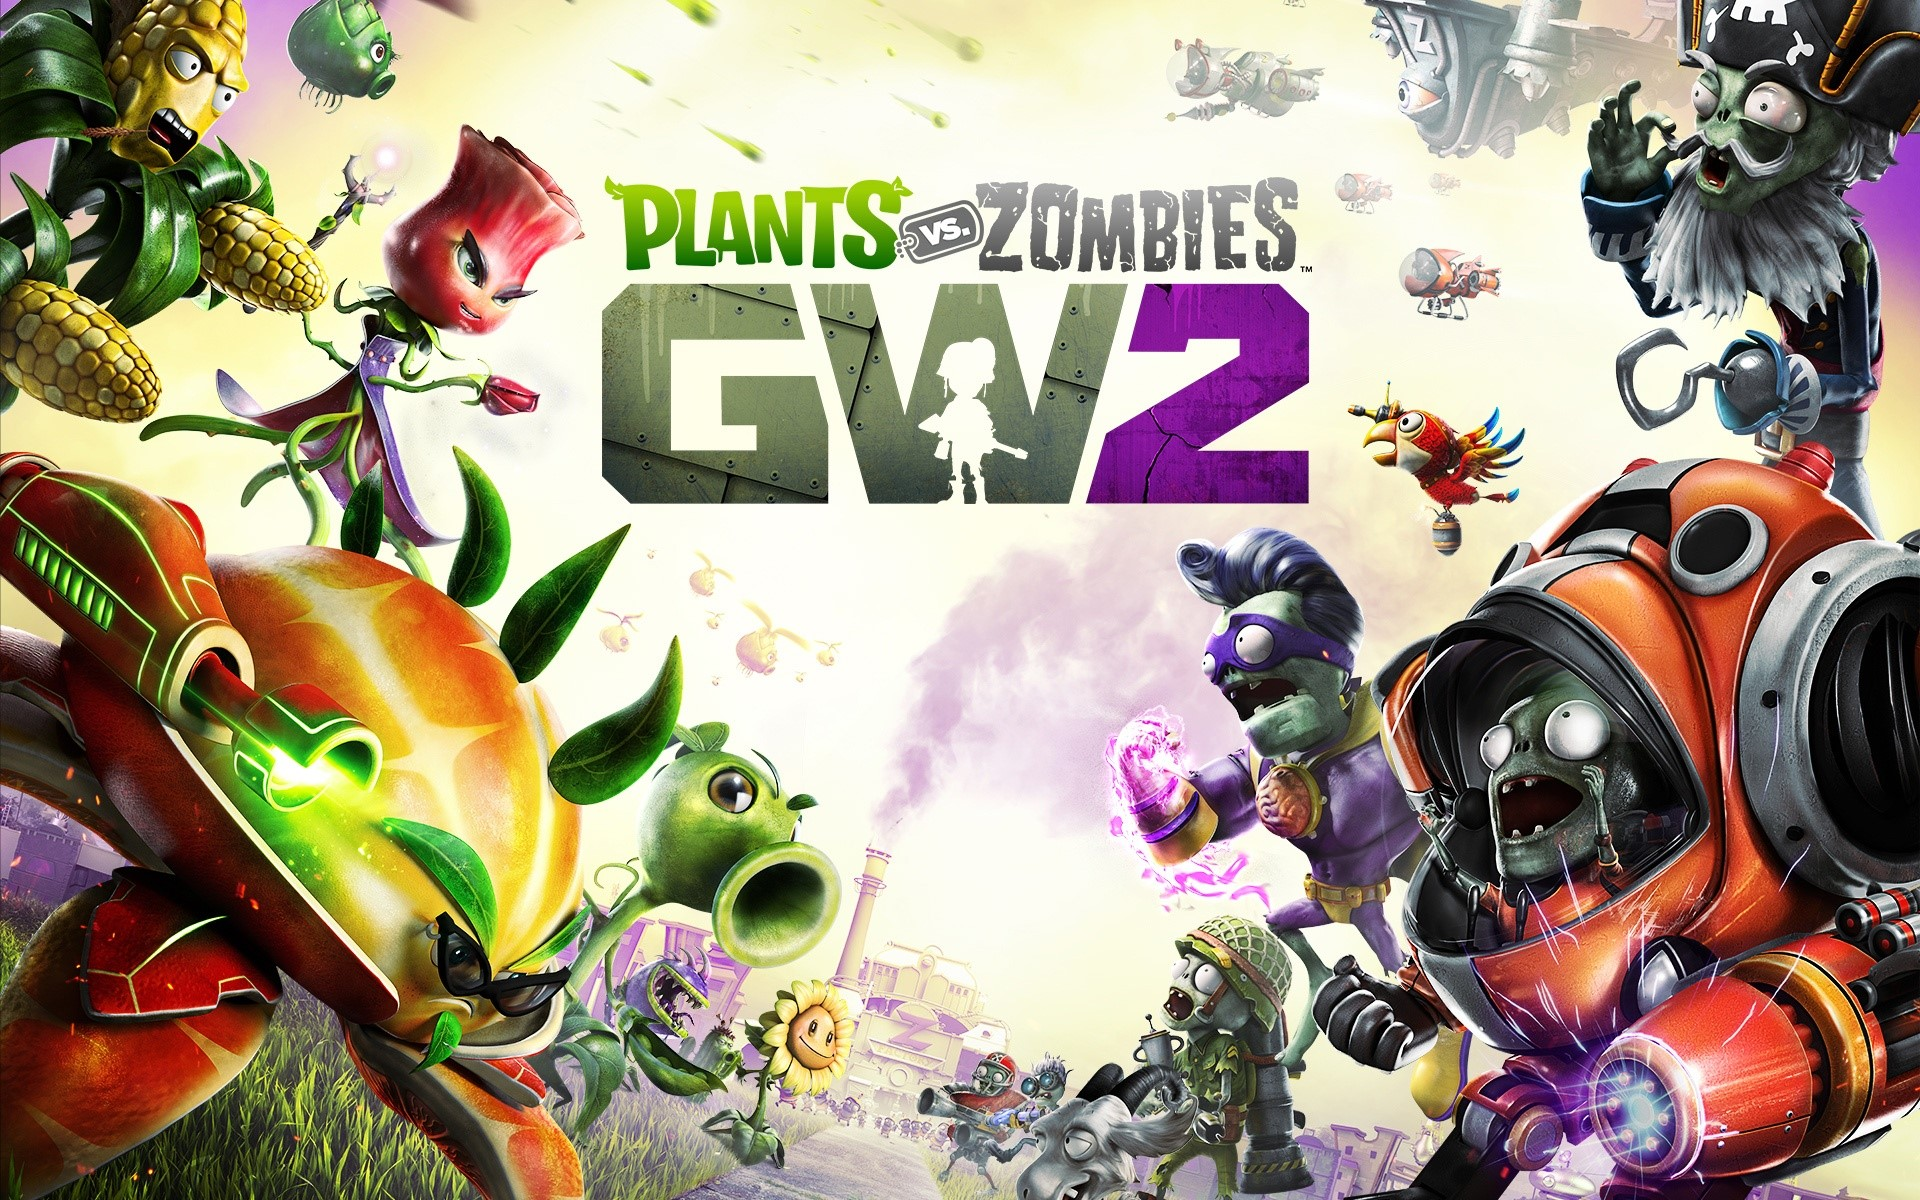 Fondos de pantalla Plants vs Zombies Garden Warfare 2